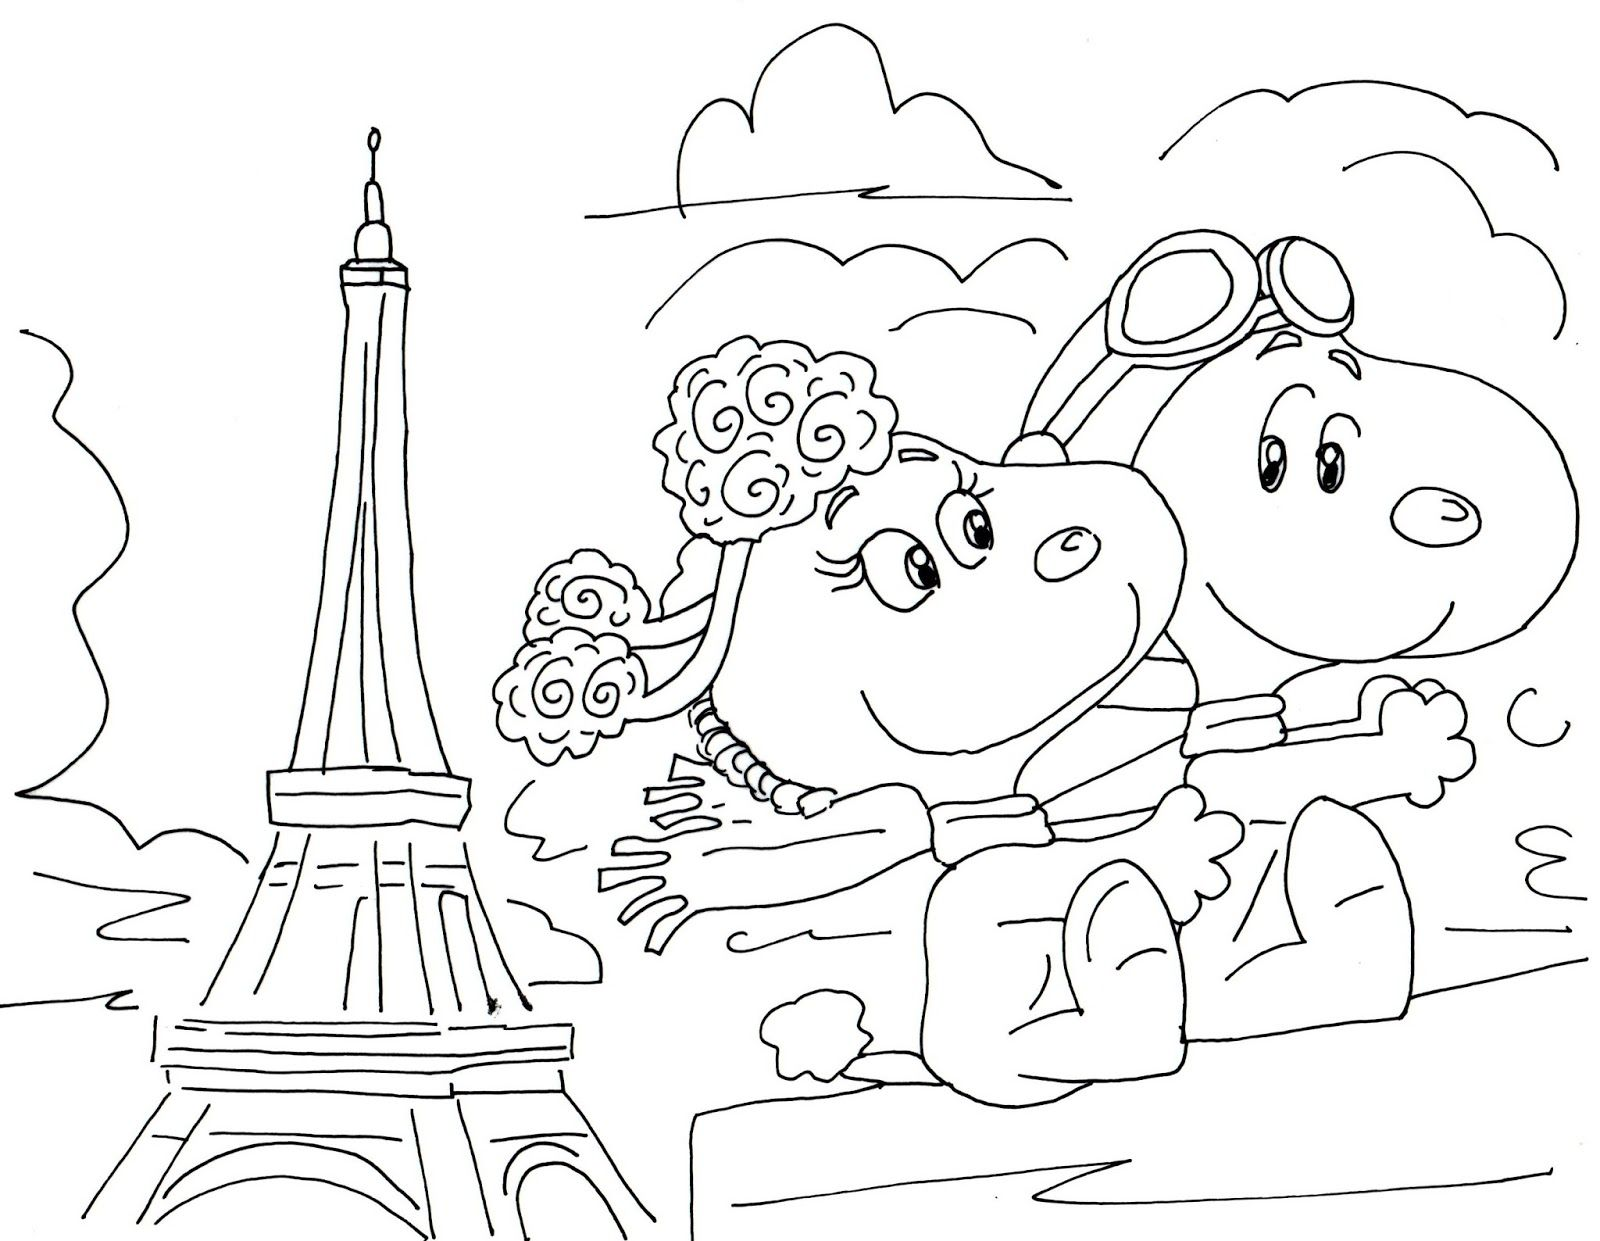 Free coloring pages of snoopy with the dog house Coloring Other